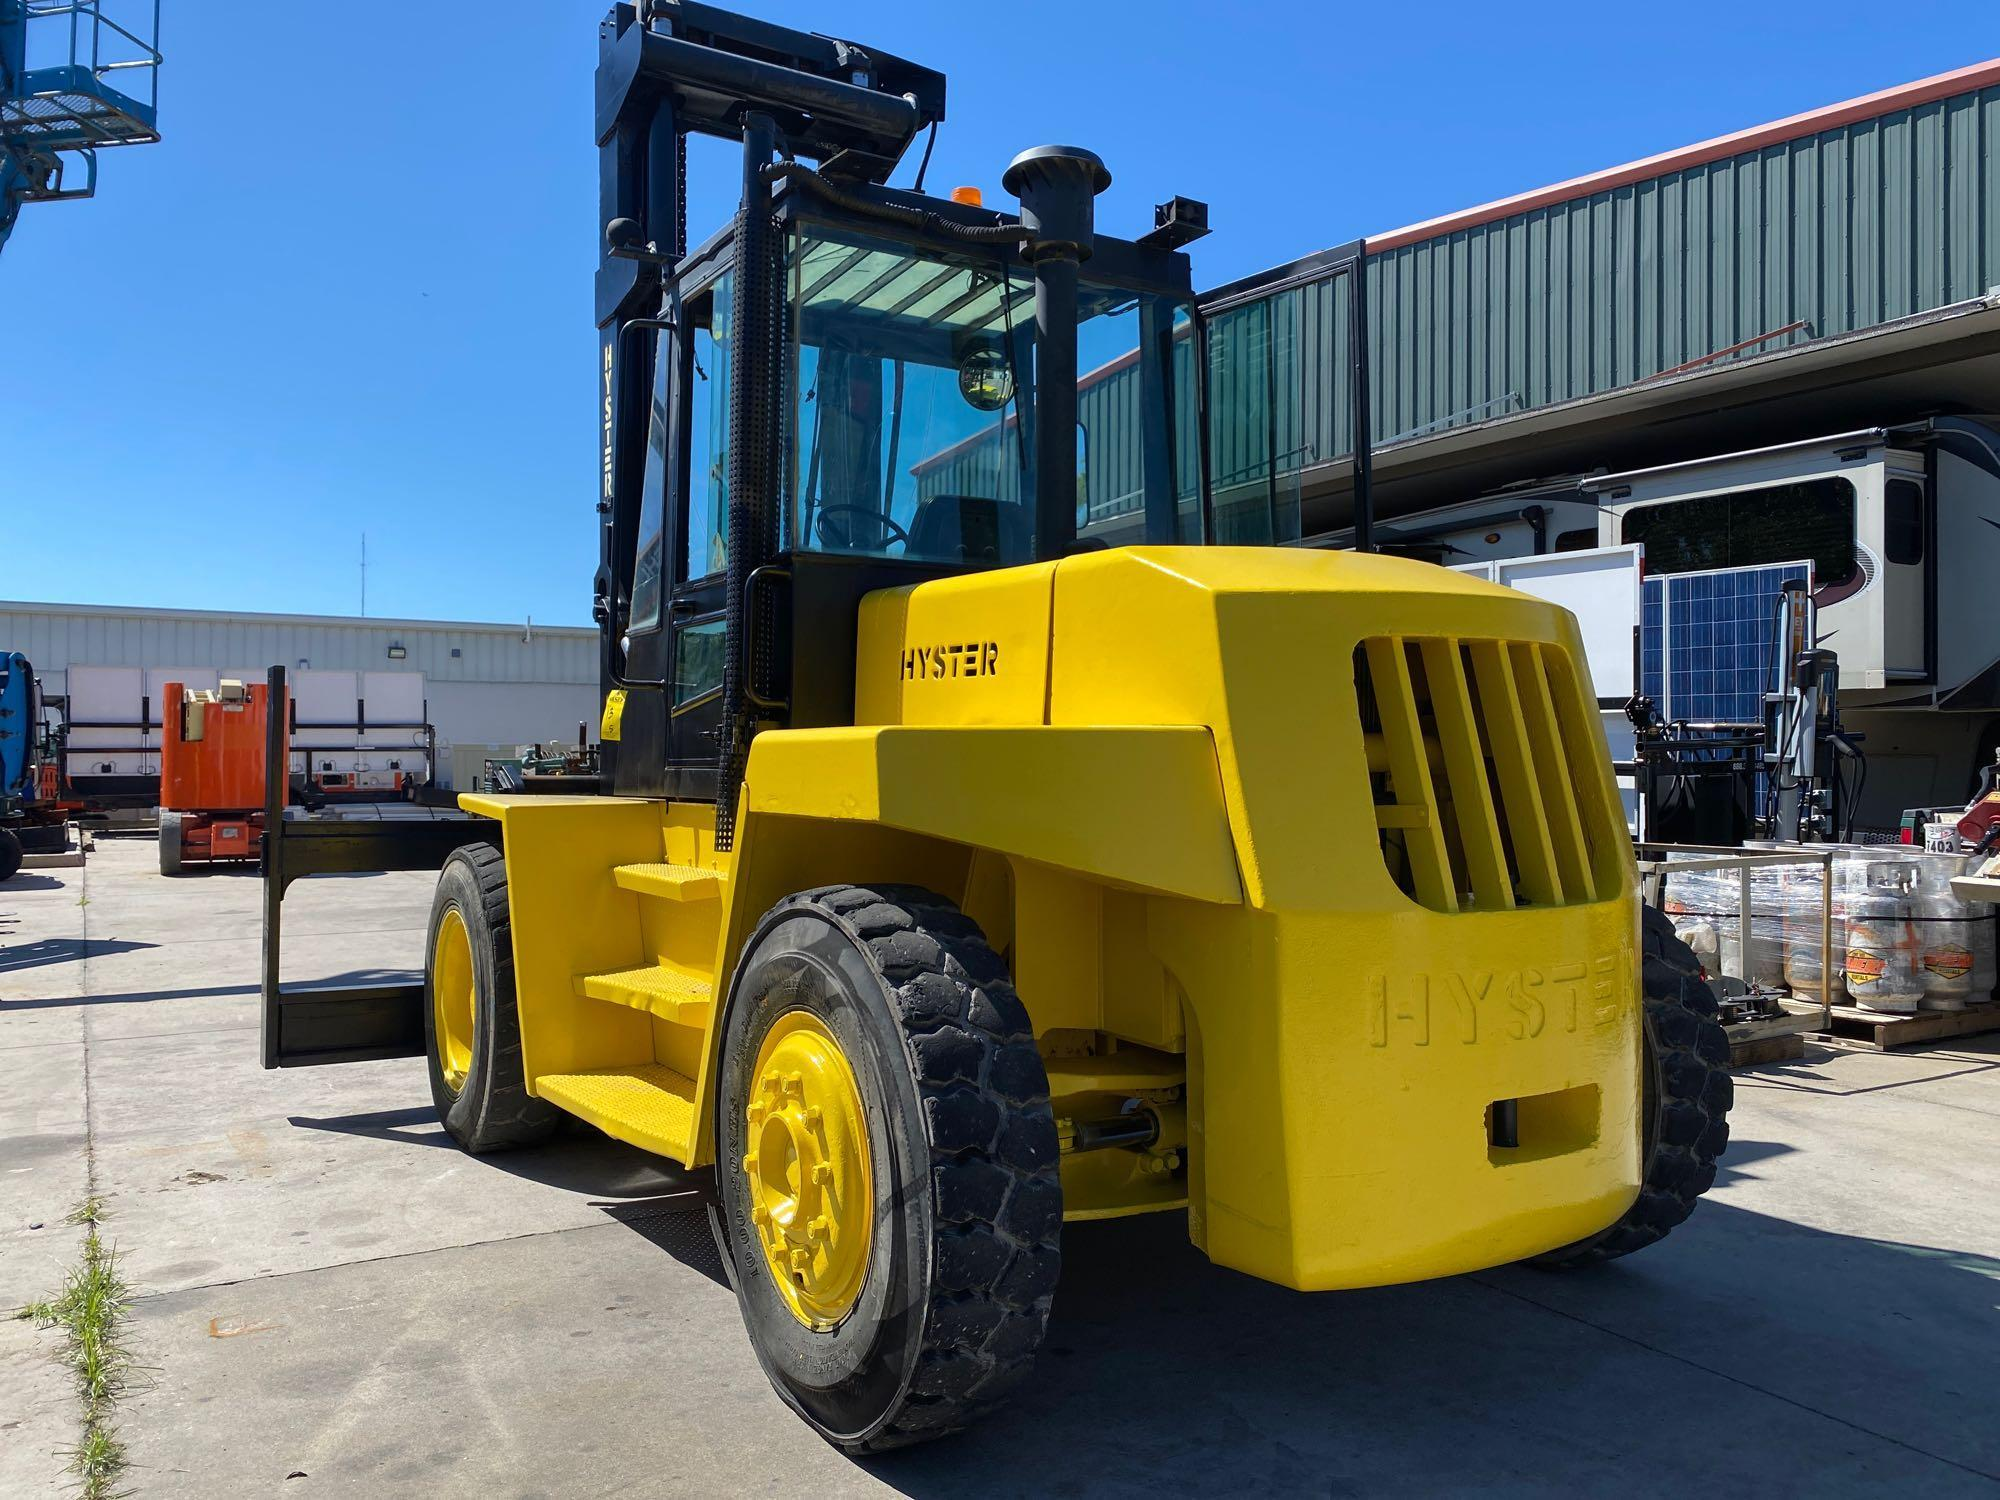 """HYSTER DIESEL FORKLIFT MODEL H190XL2, APPROX. 19,000 LB CAPACITY, 212.6"""" HEIGHT CAPACITY, RUNS AND O - Image 3 of 12"""